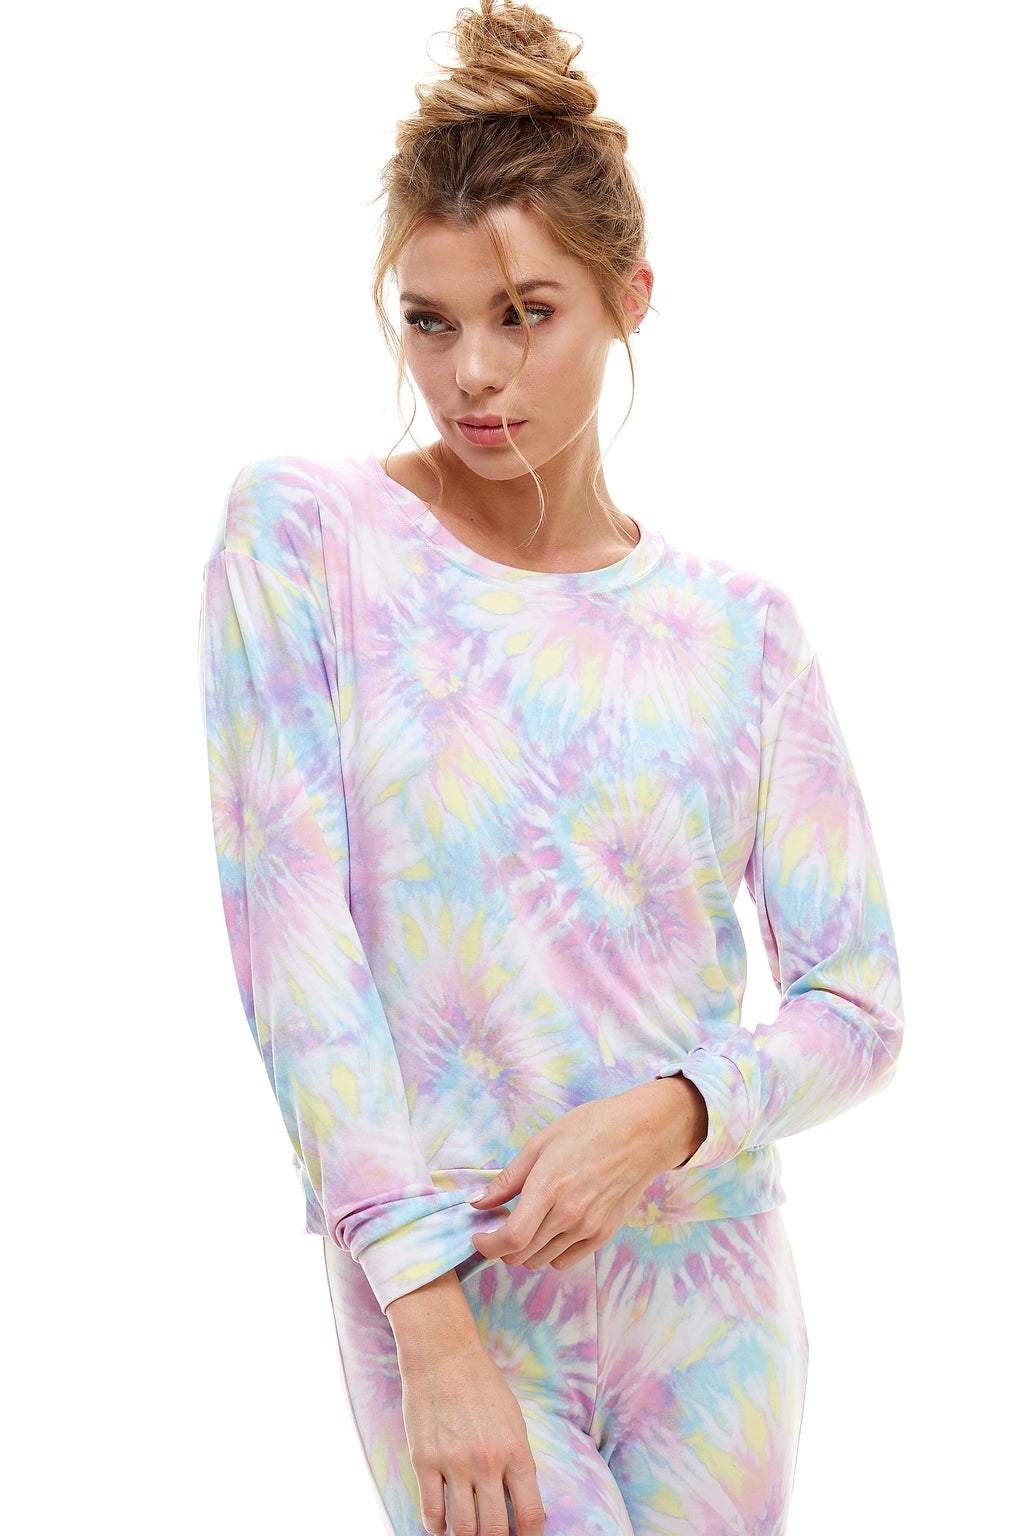 SLEEPY CREWNECK | COTTON CANDY